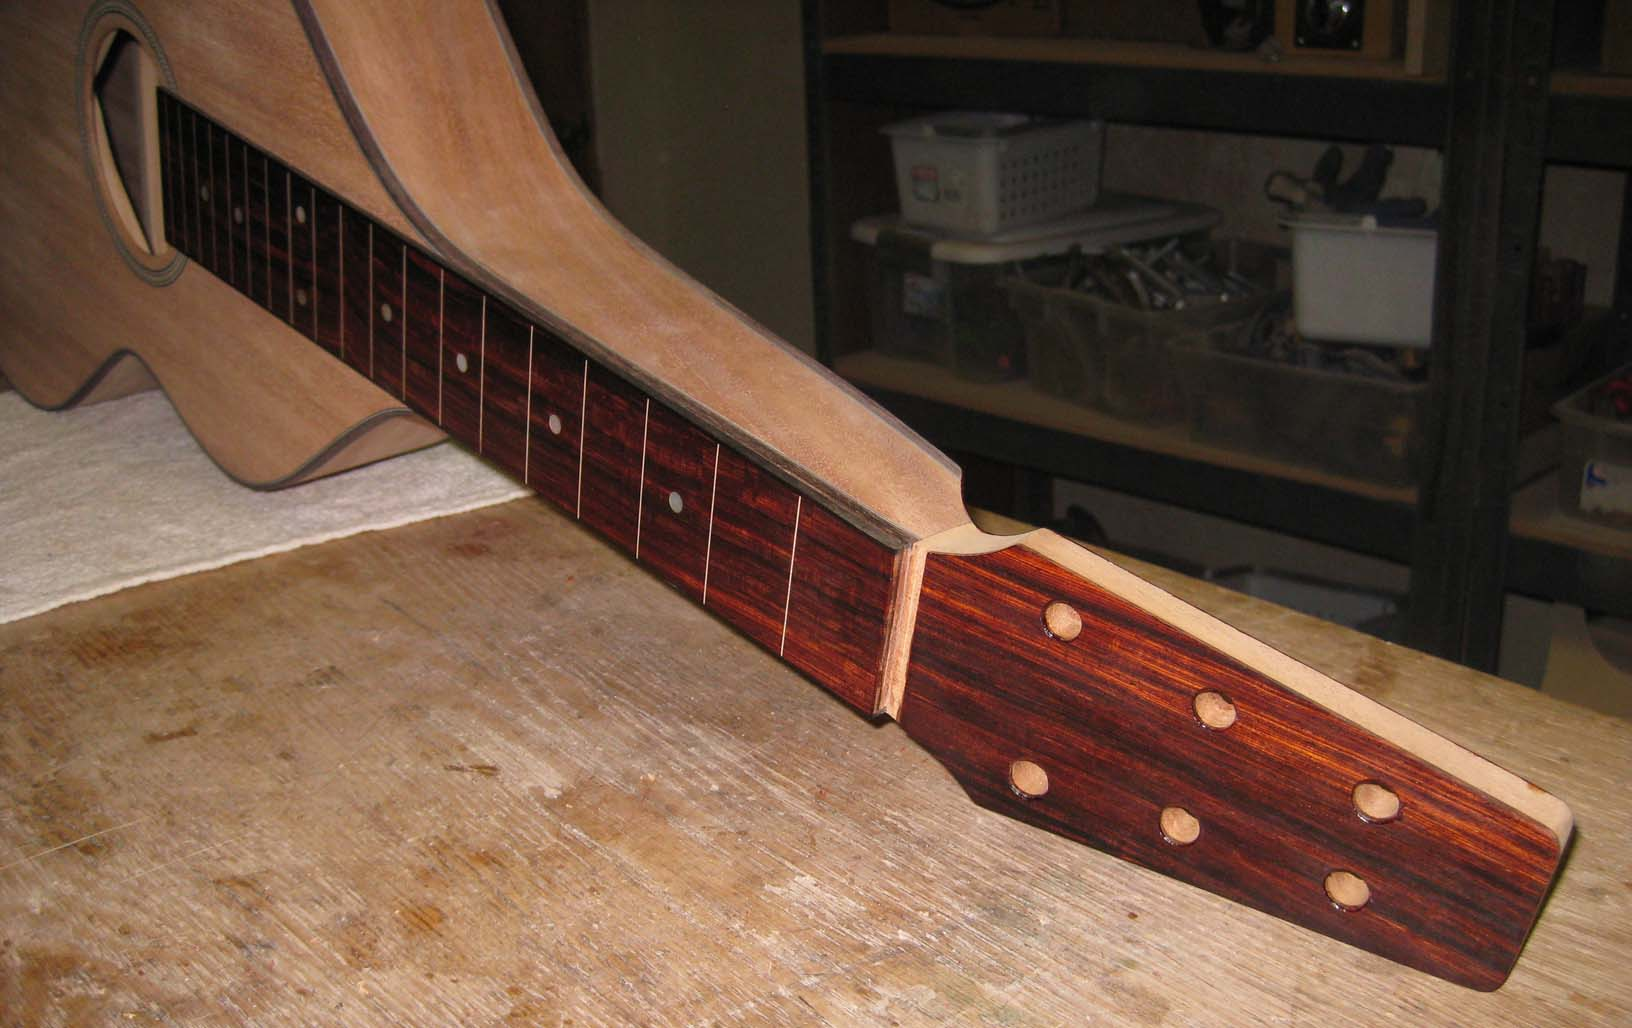 Weissenborn Guitar Project - Gary Anwyl's Web Page